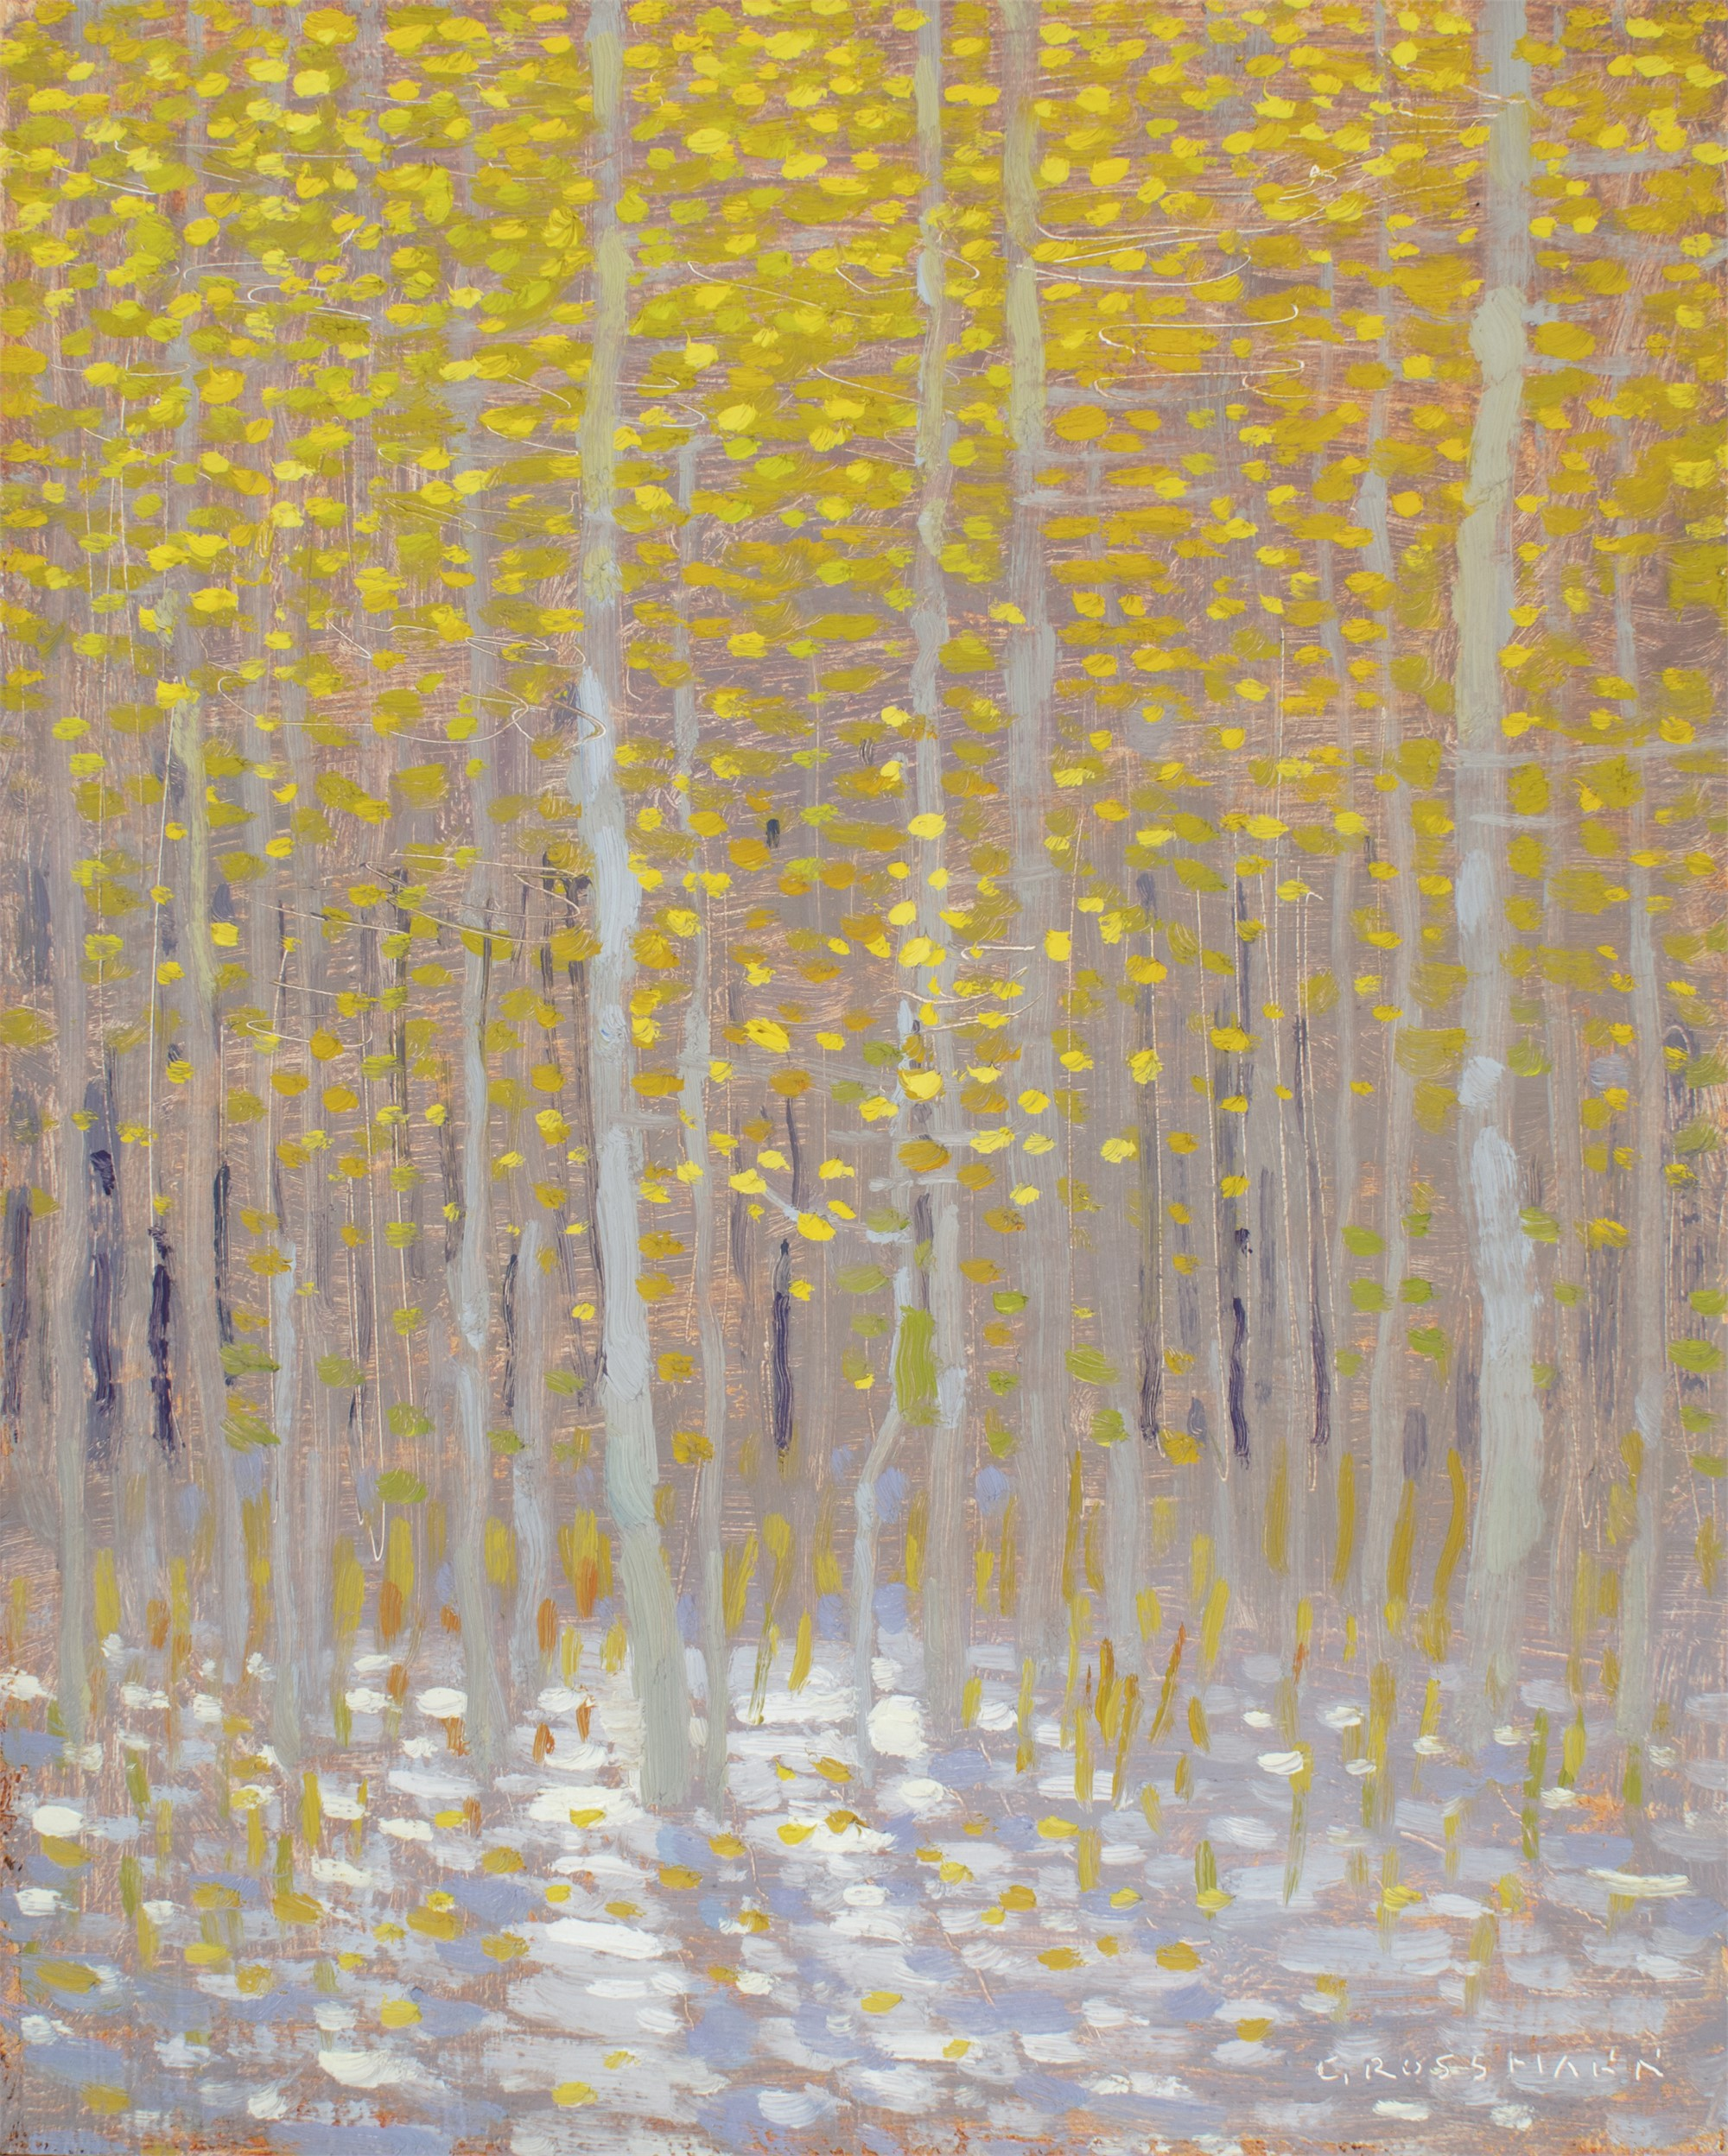 Snow and Sunlit Leaves by David Grossmann